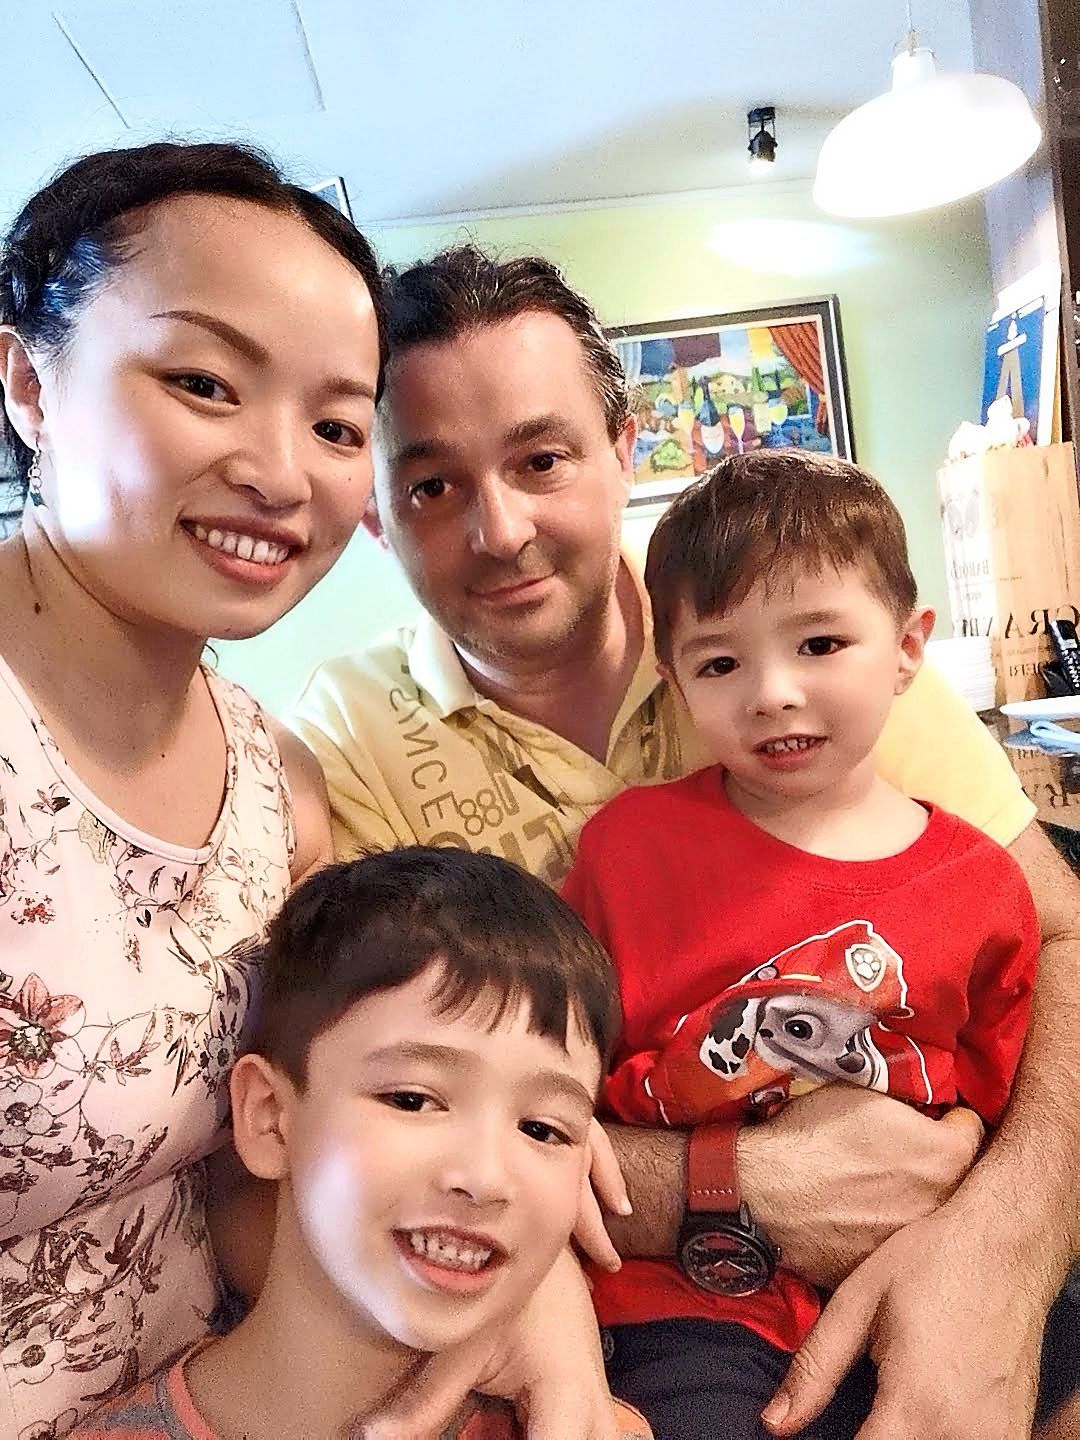 The couple has strict ground rules for their sons: Study first, play later. Photo: Jessica Ong